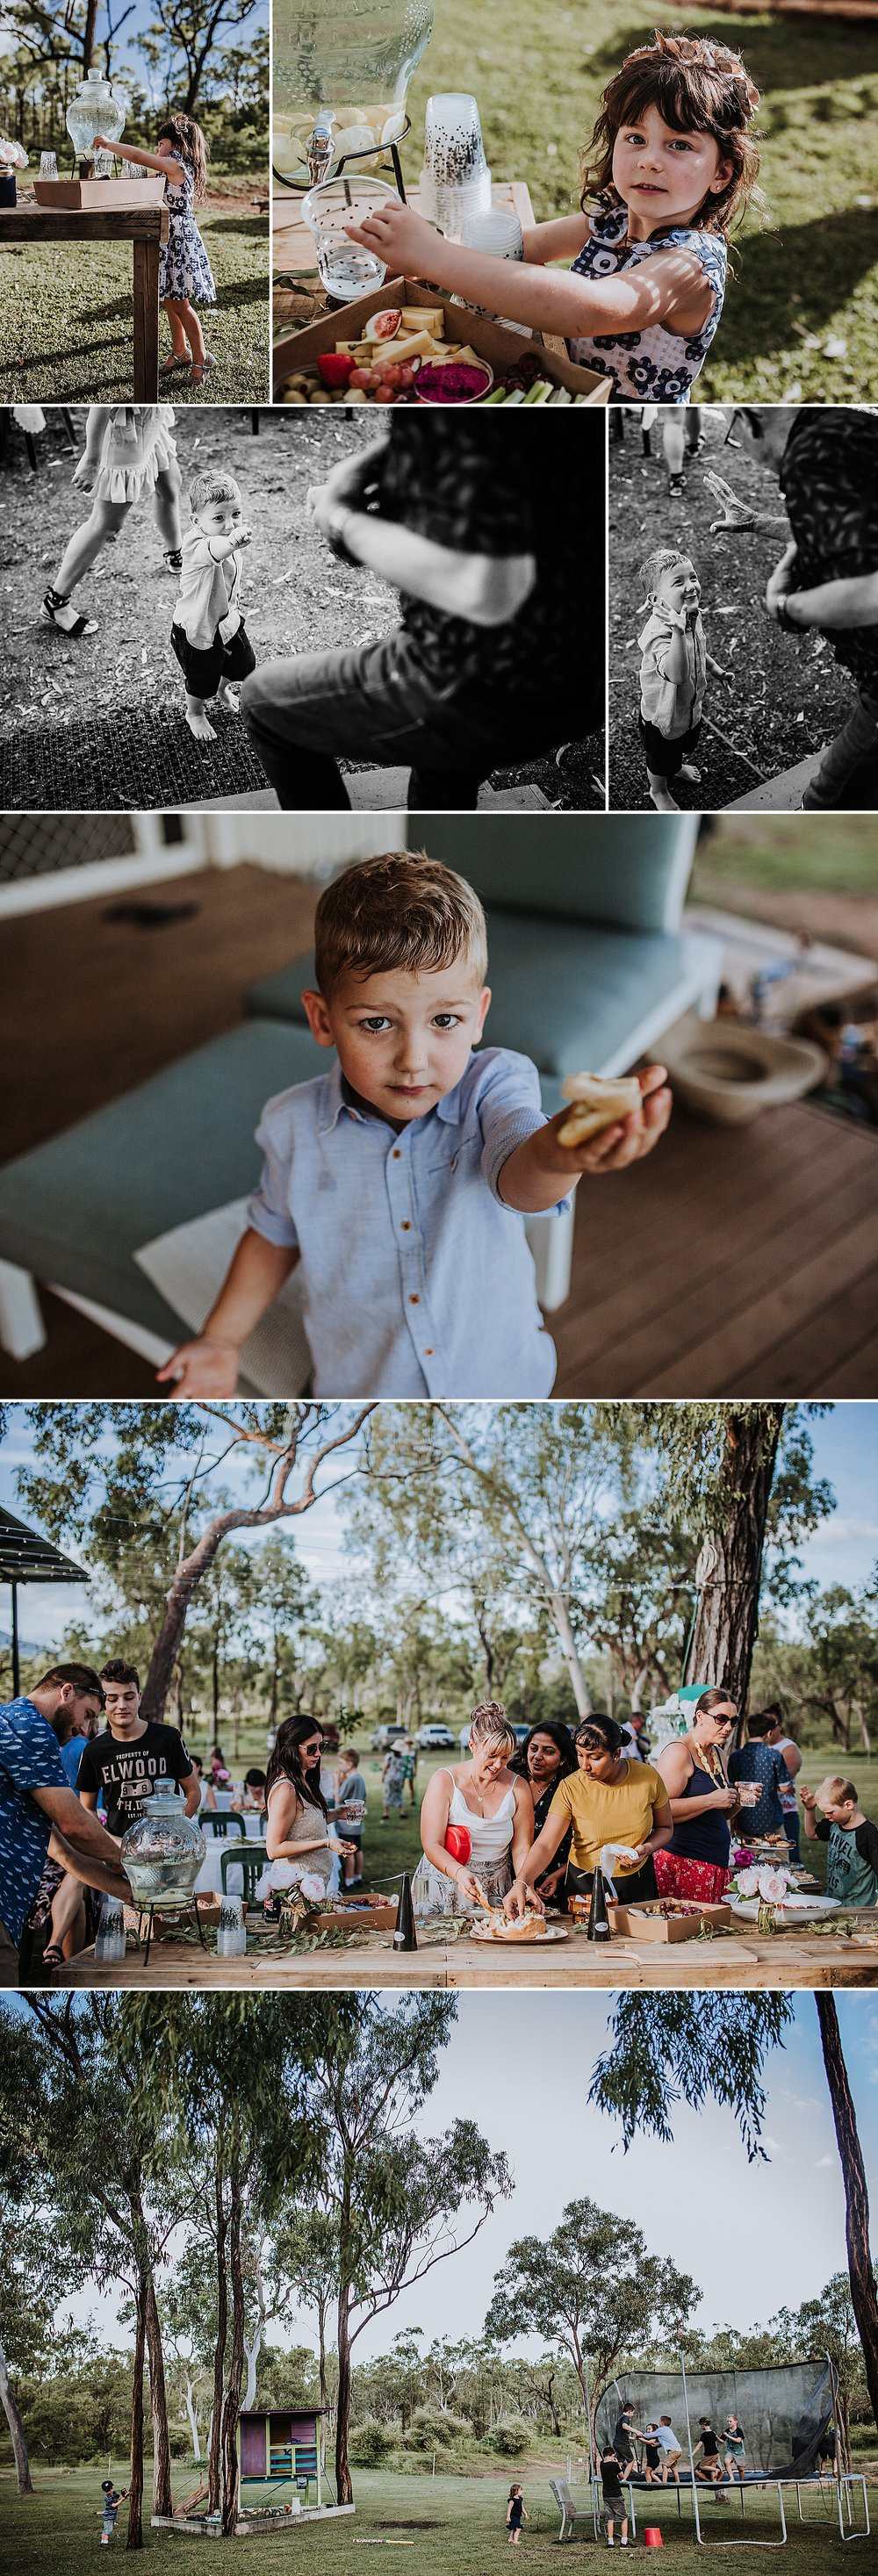 Townsville-Kids-and-Family-Event-Birthday-Christening-lifestyle-Documentary-photos